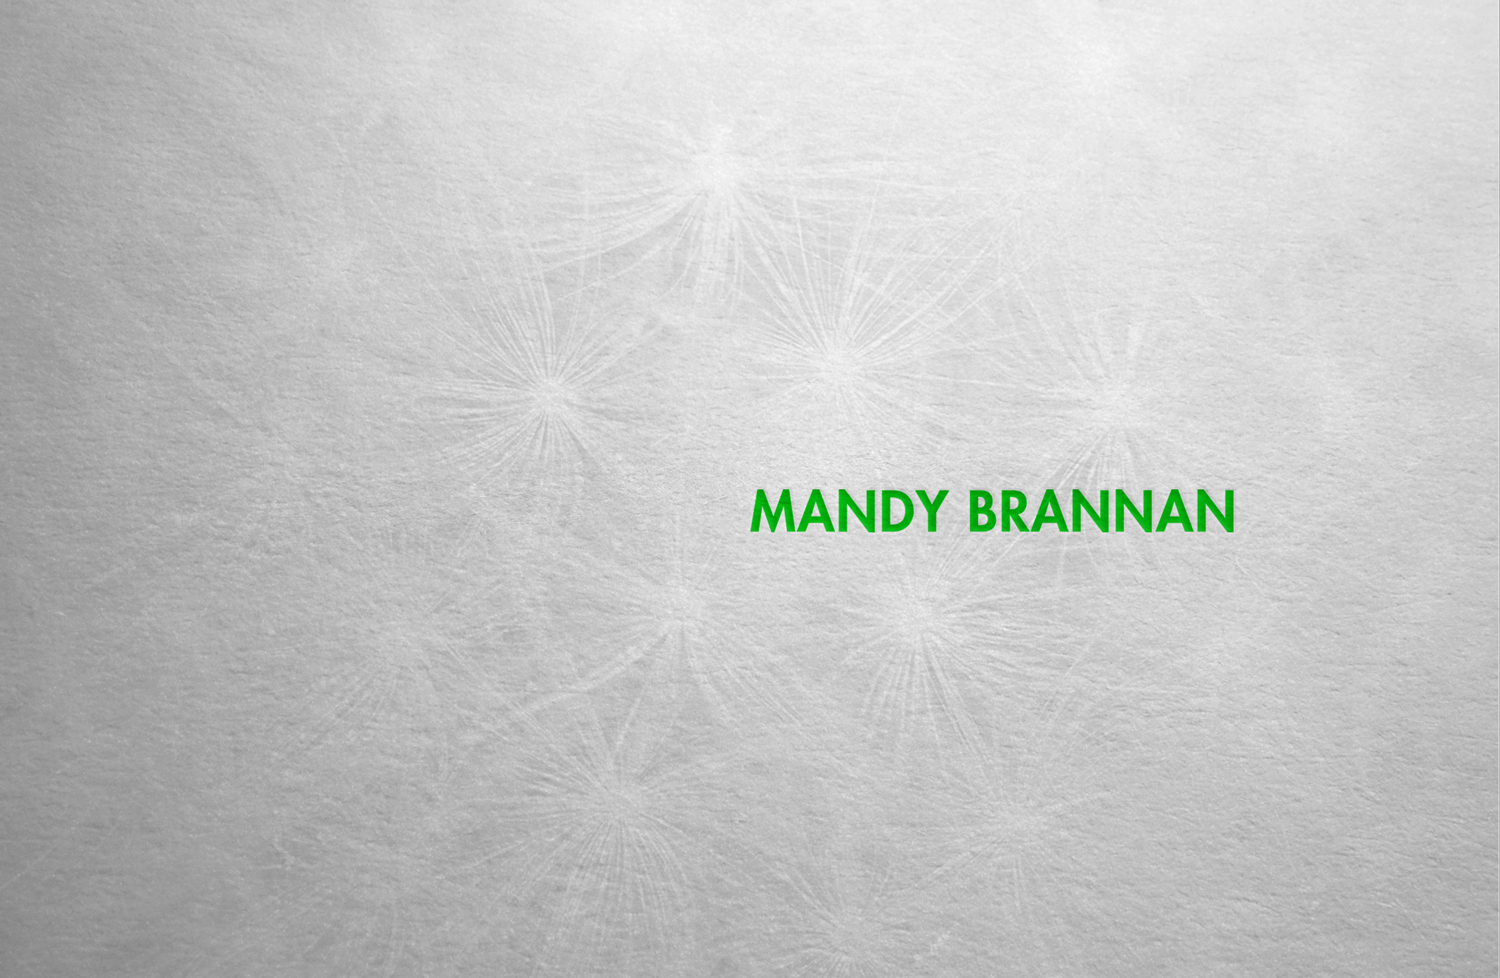 Branding positioning for book artist and educational lecturer, Mandy Brannan.